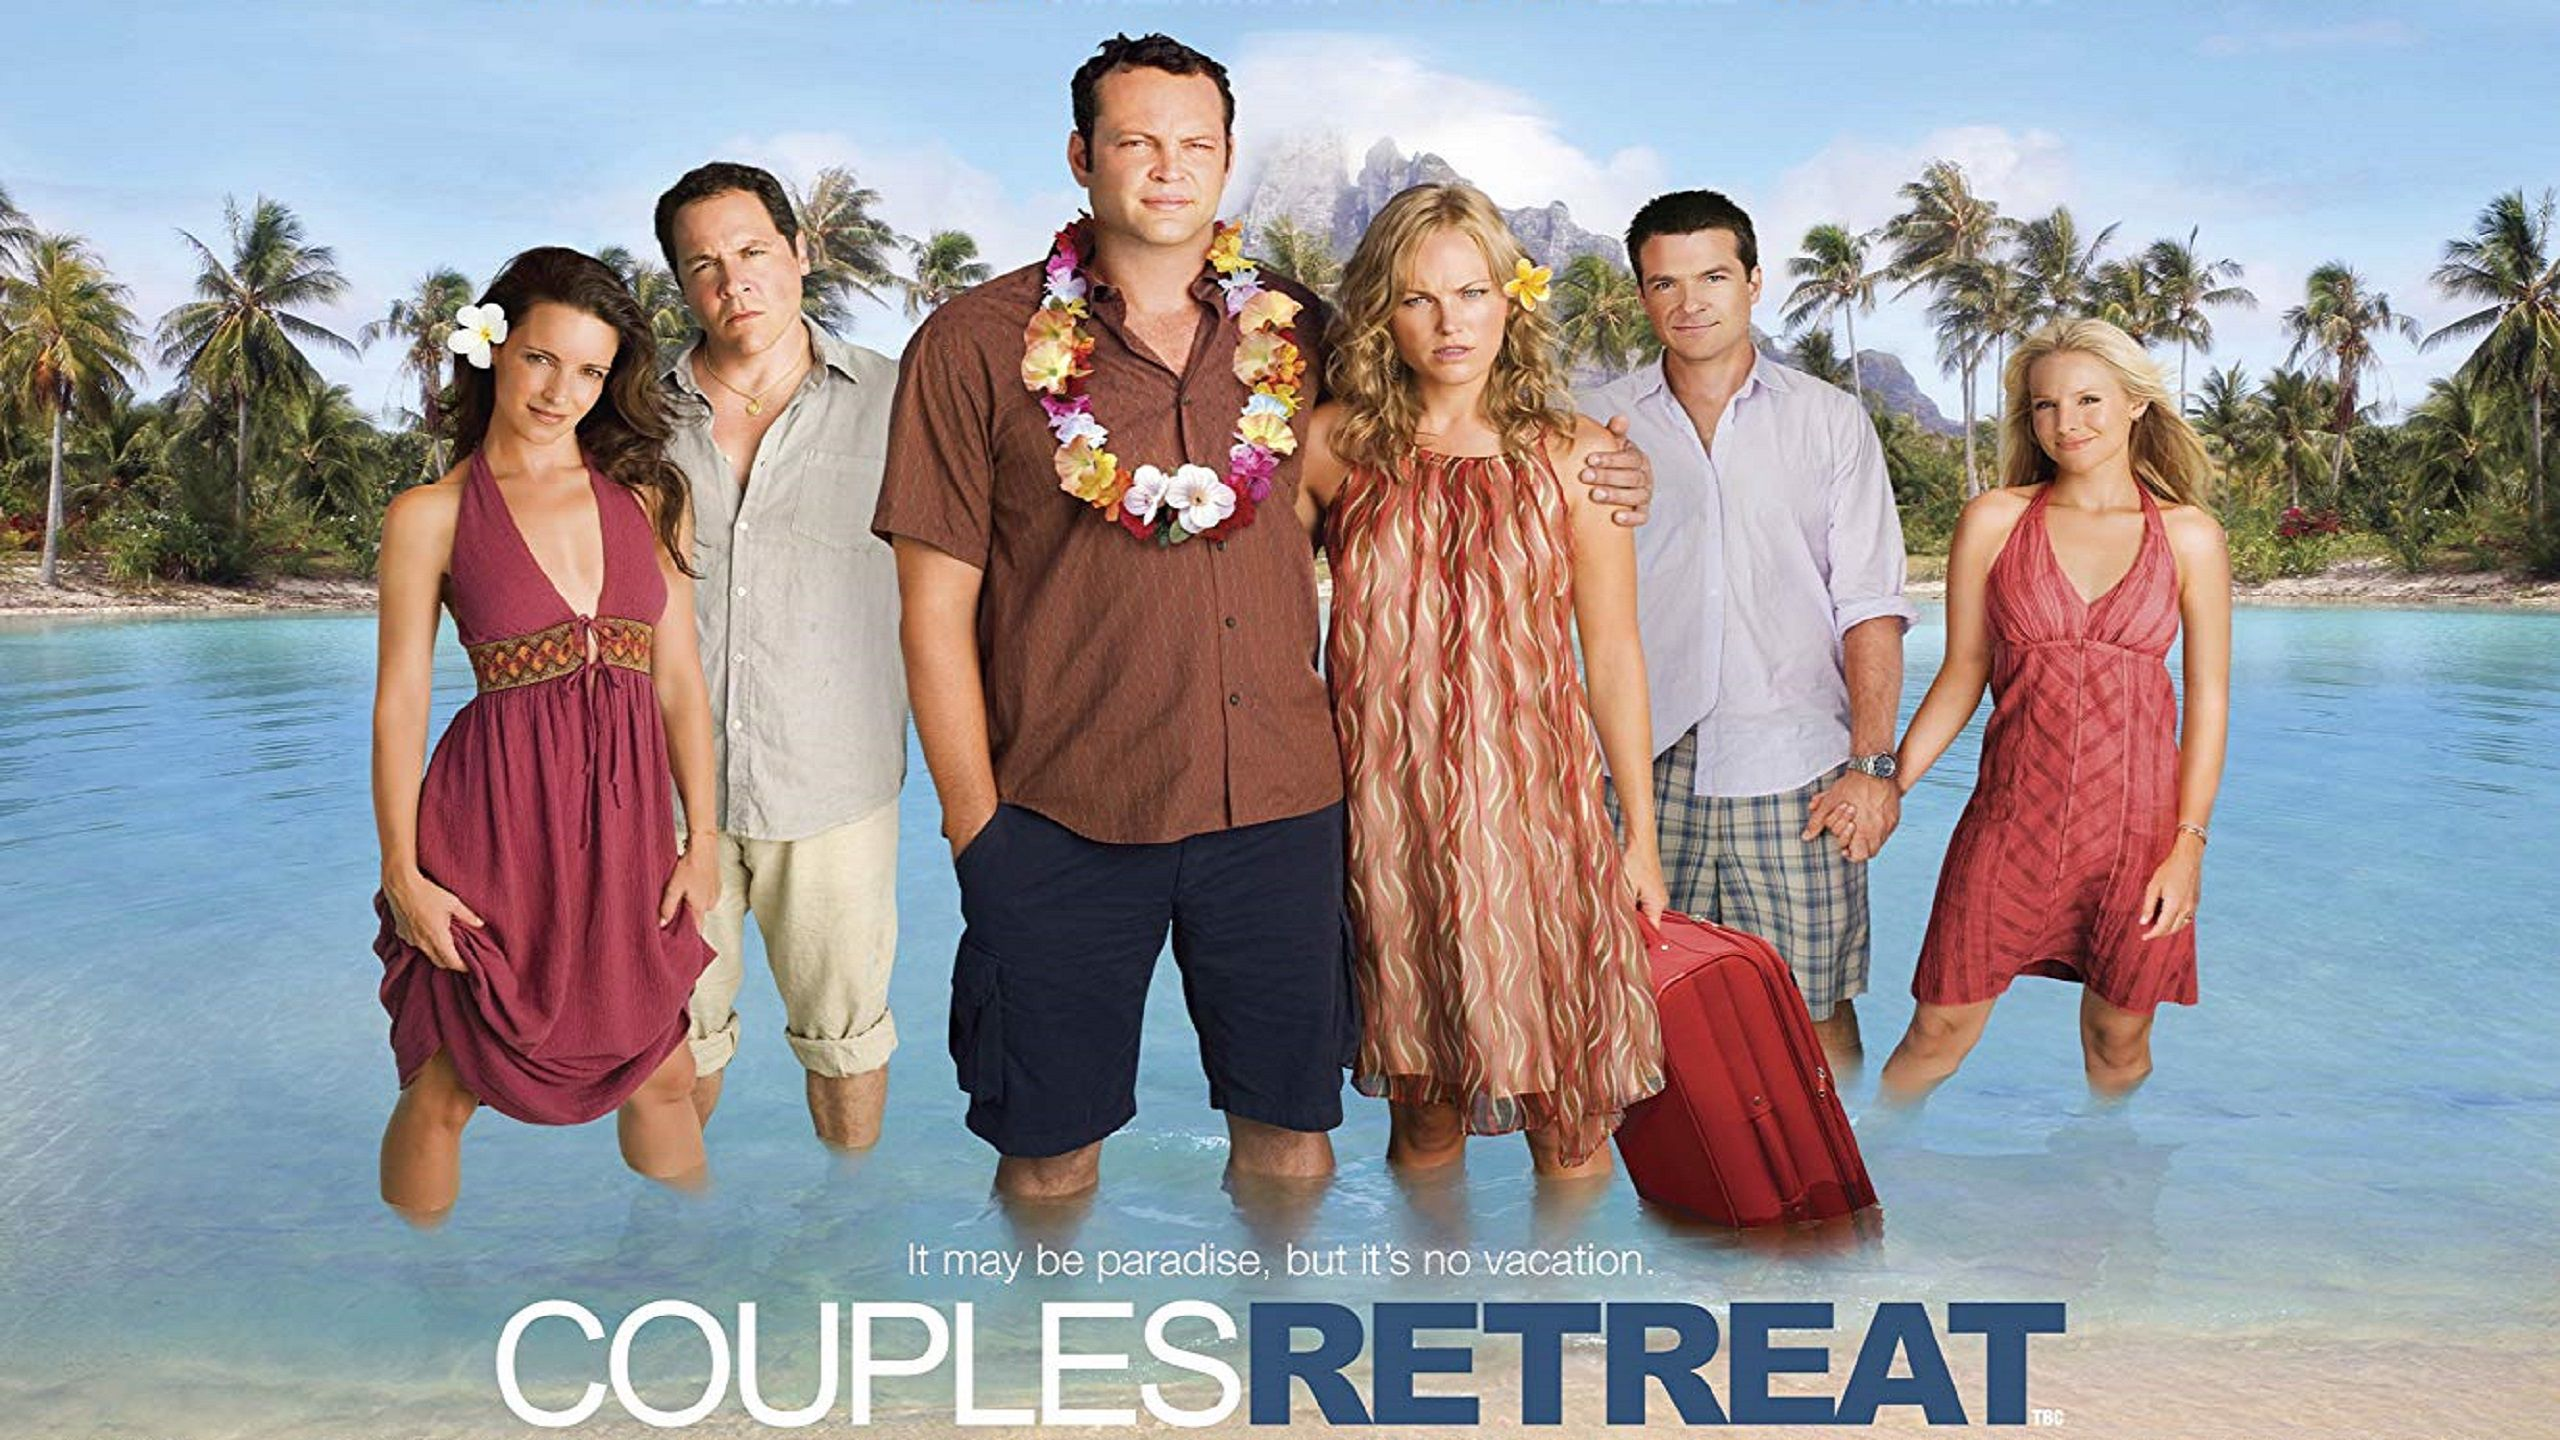 Couples Retreat (2009) wallpaper and poster